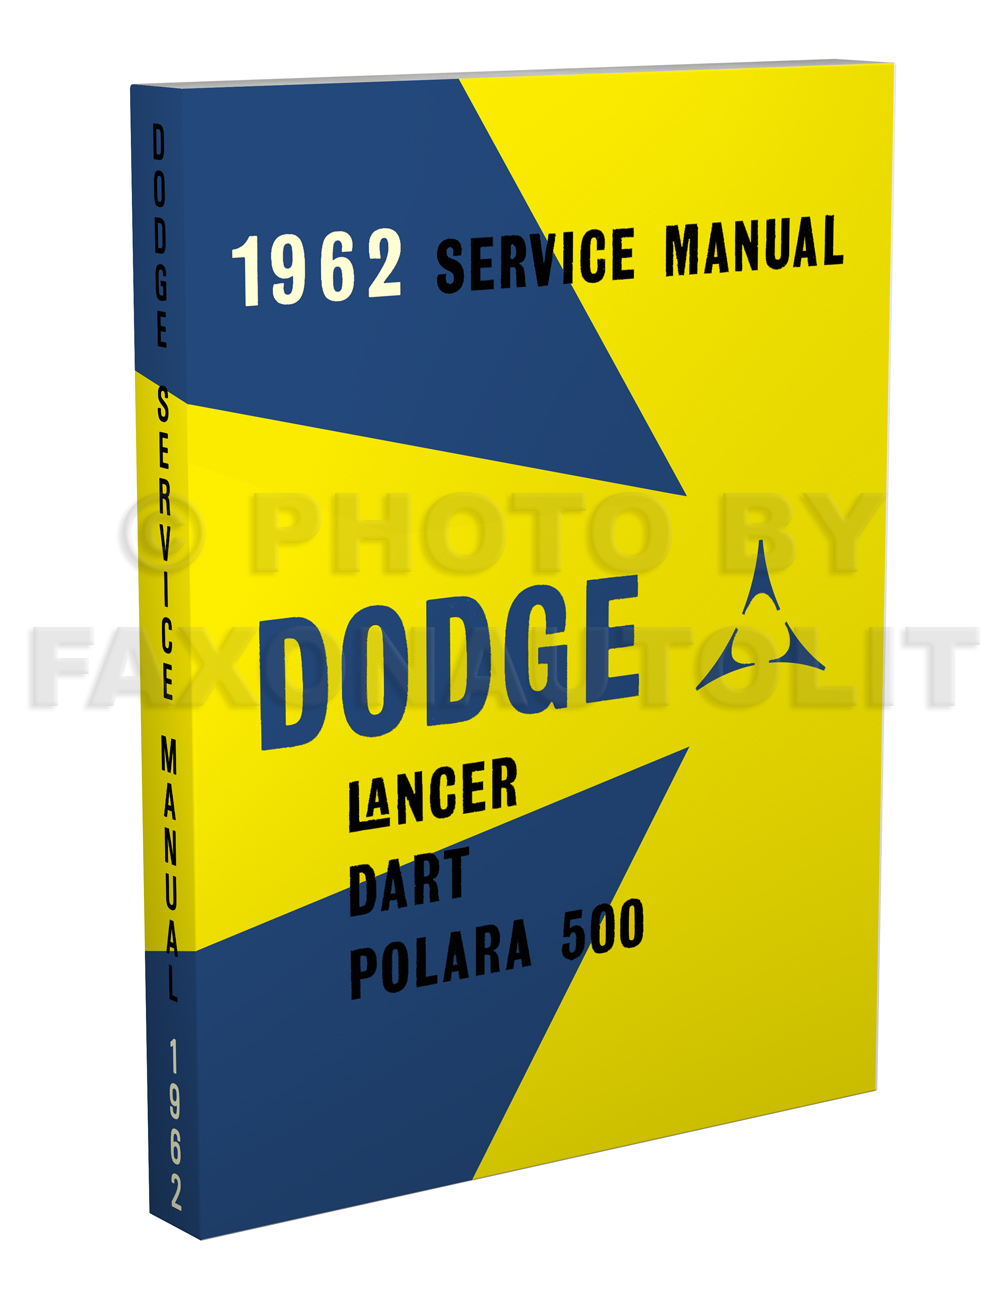 1962 Dodge Car Shop Manual Reprint -- Lancer, Dart, Polara